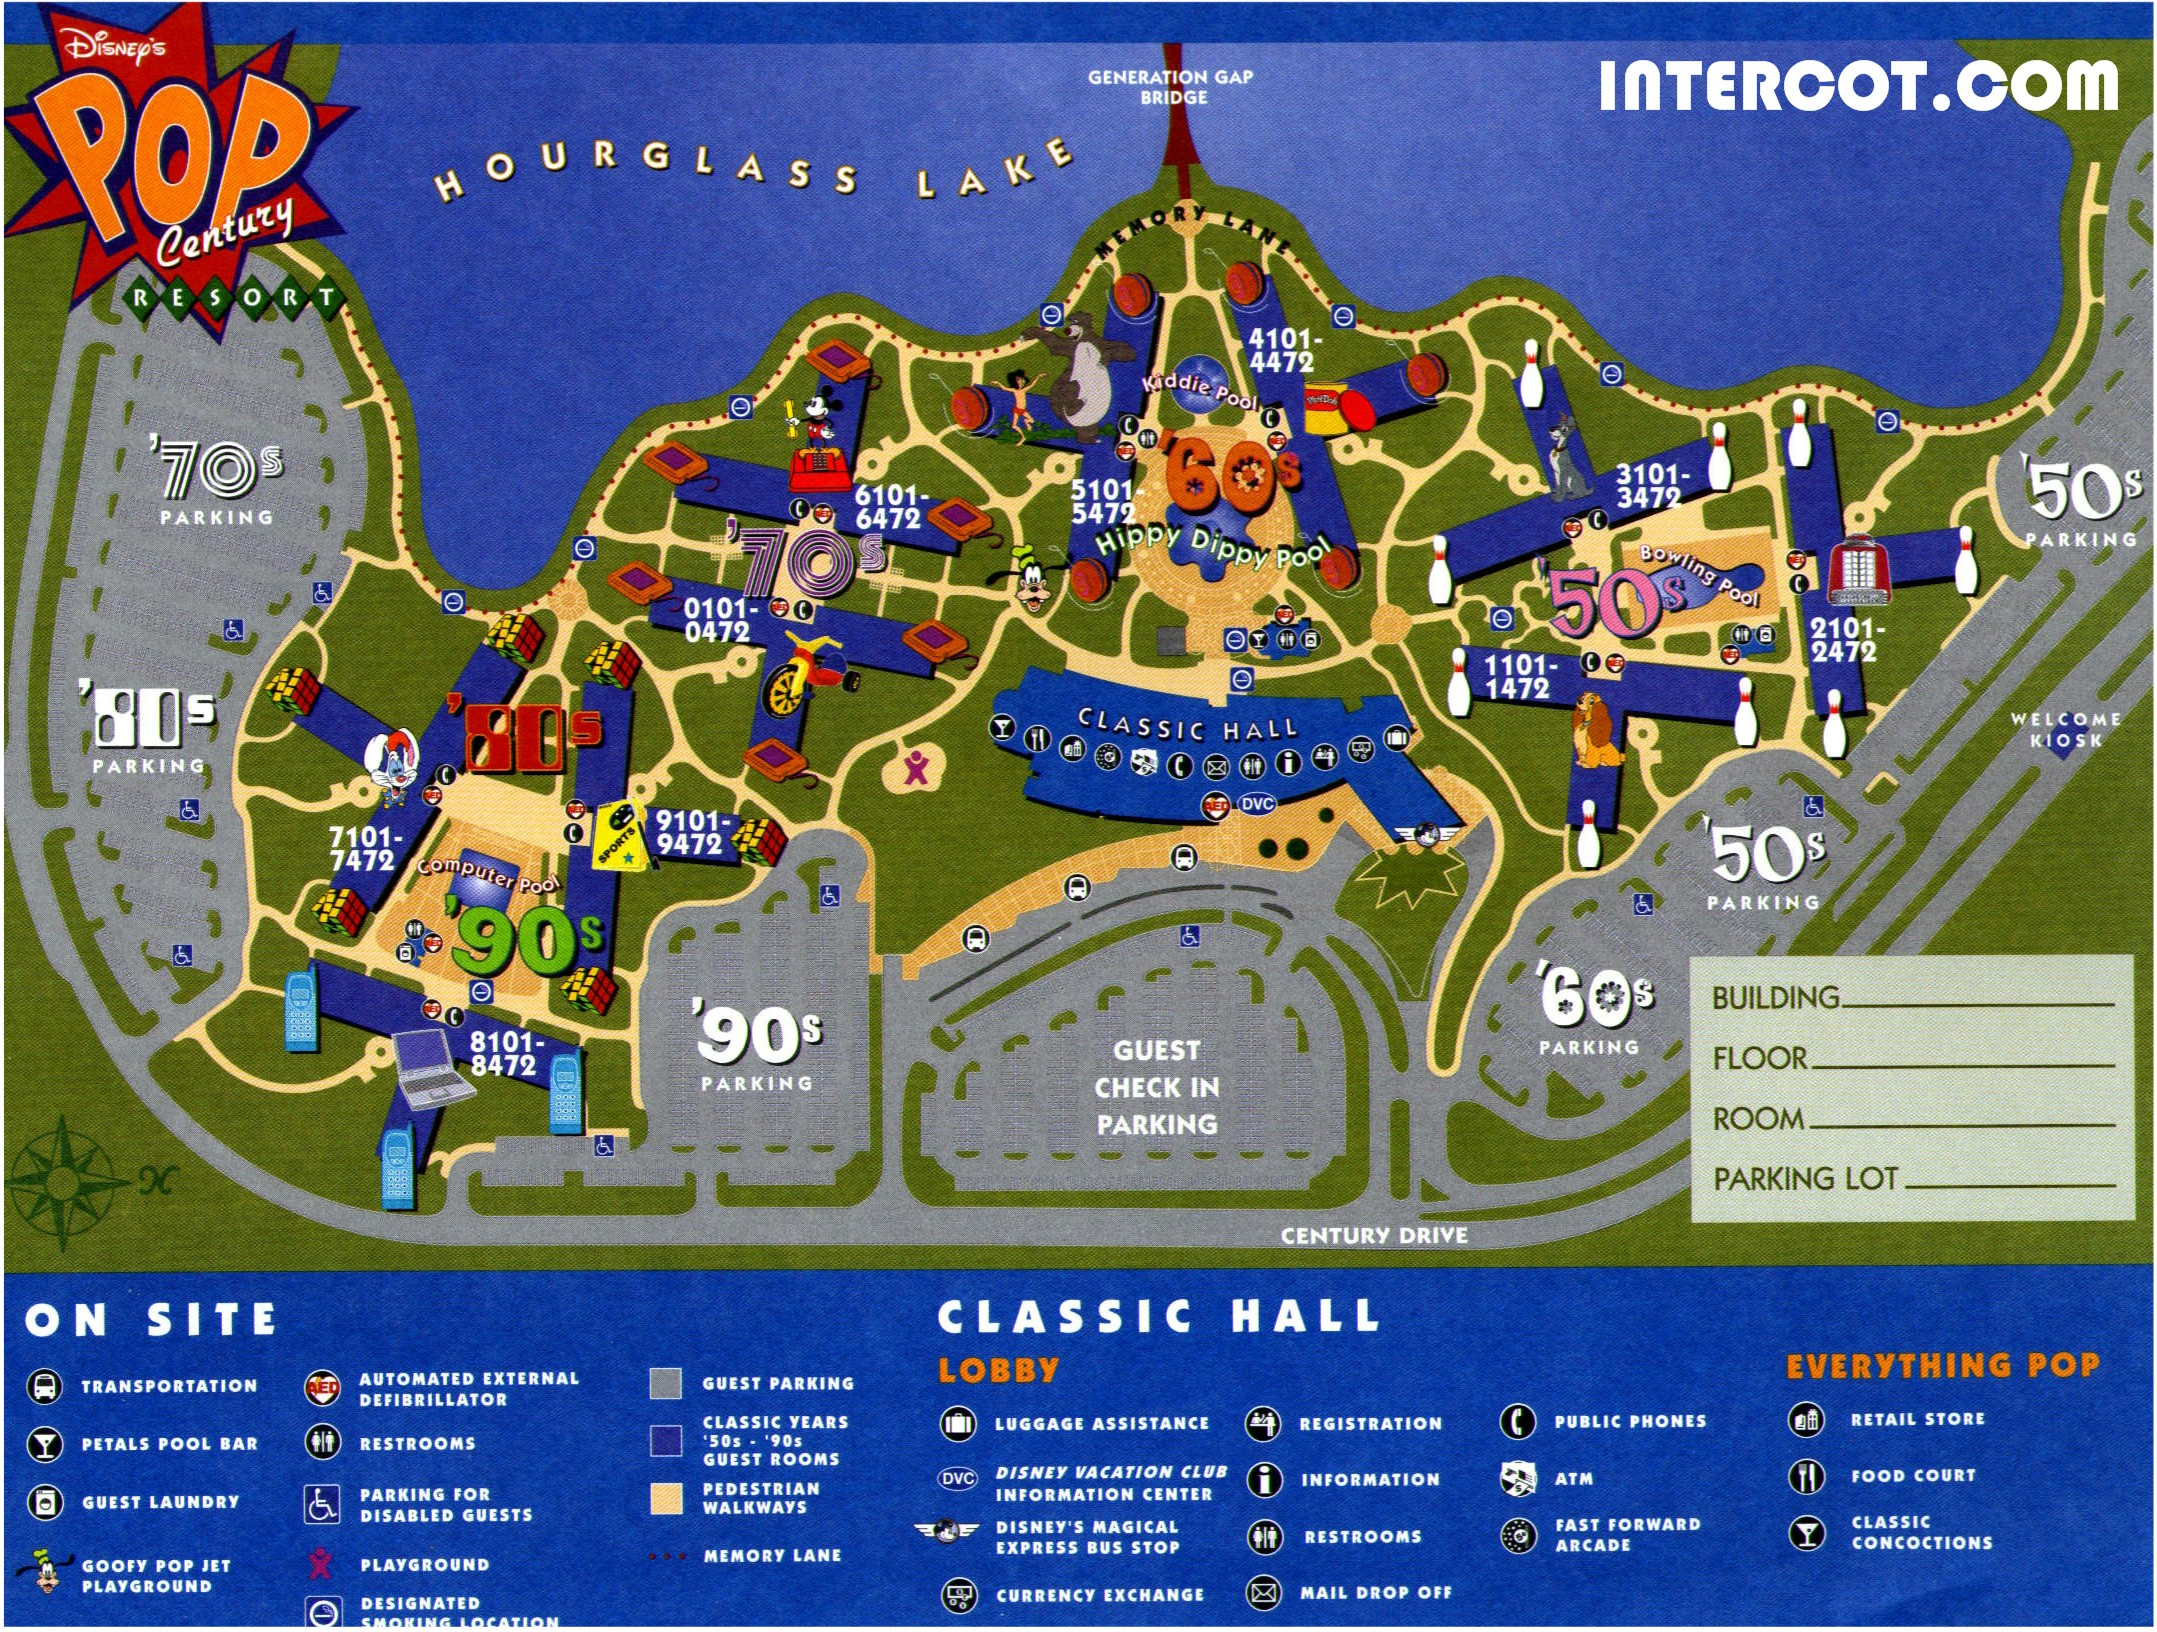 Pop Century Resort Map Walt Disney World   Disney World Vacation Information Guide  Pop Century Resort Map